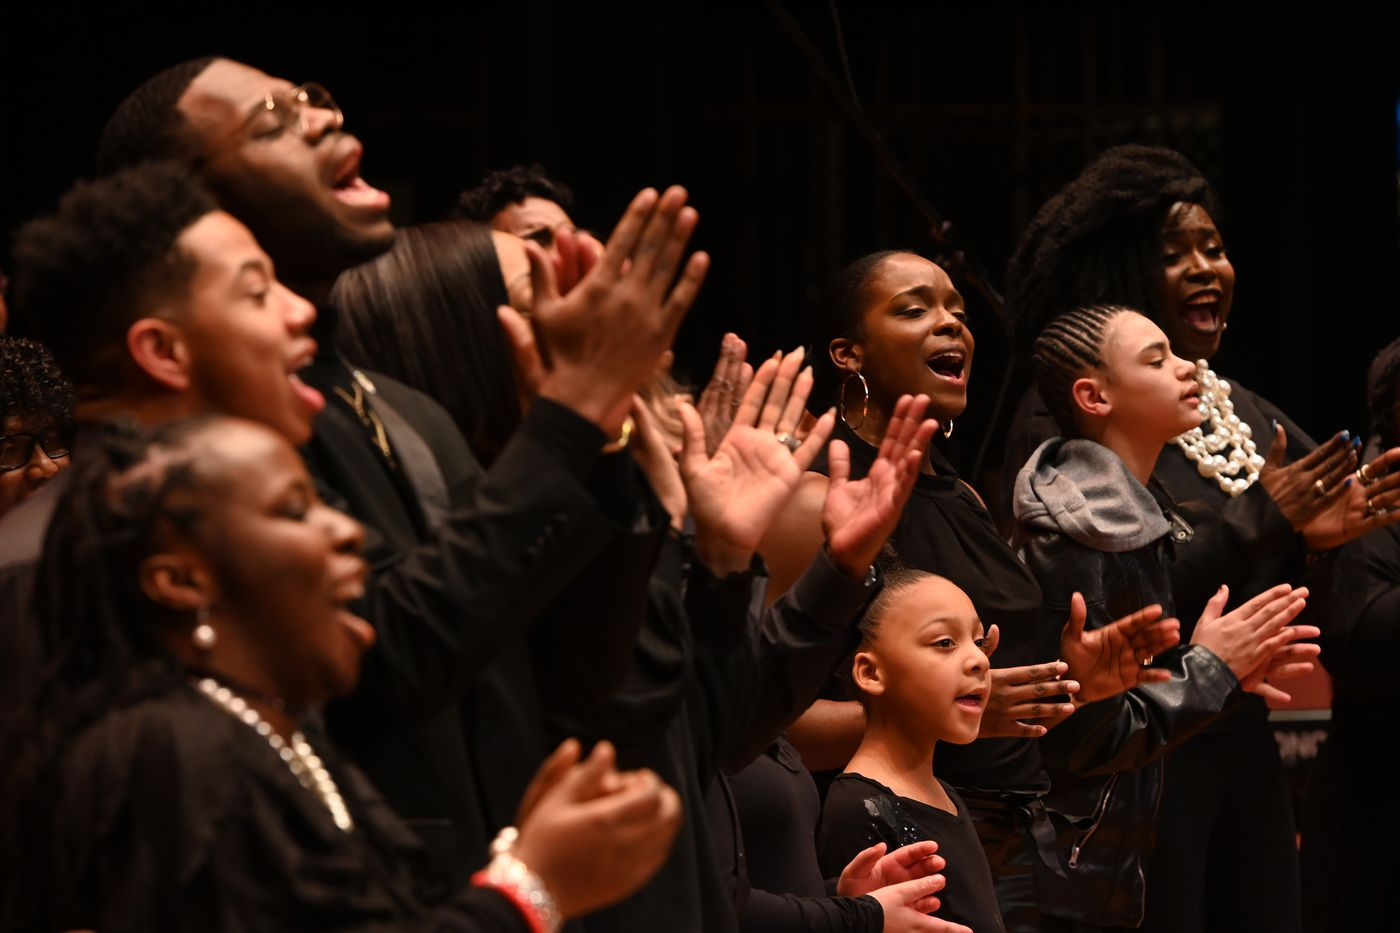 JANUARY 19. The MLK Community-Wide Choir performed during the annual Martin Luther King, Jr. Holiday Commemoration at the West High School Auditorium. (Bill Roth / ADN)